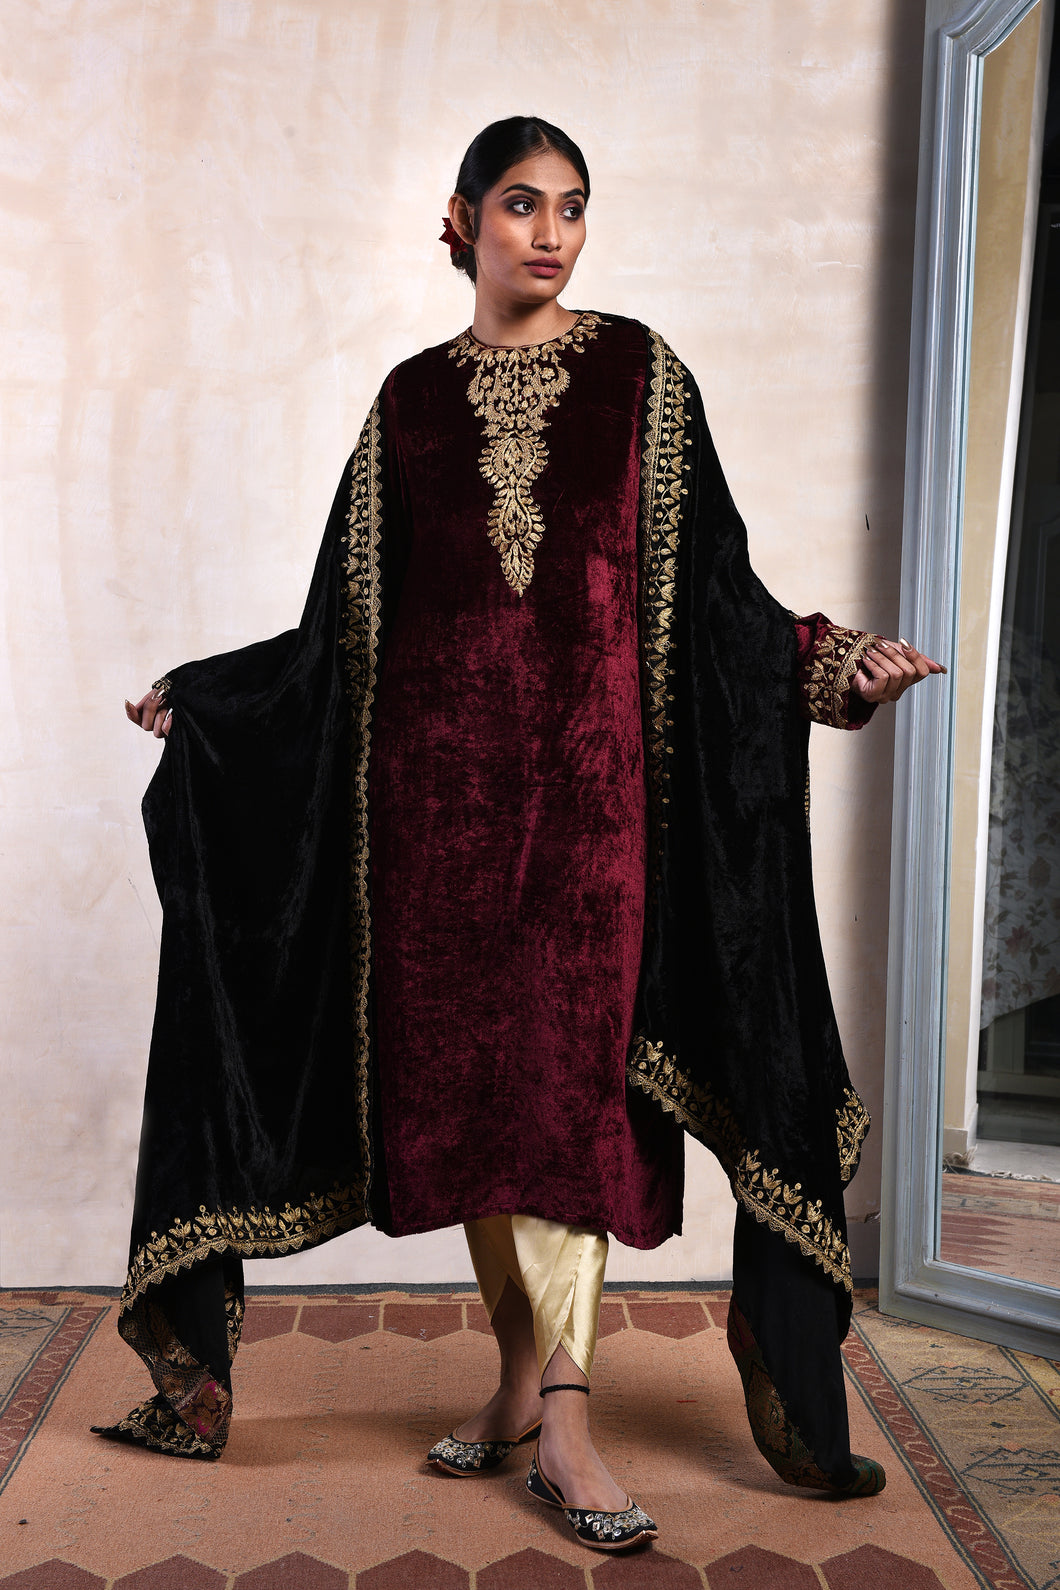 A burgundy Velvet zari kurta with a black zari shaneel odhni. Rich gold satin tulip pants